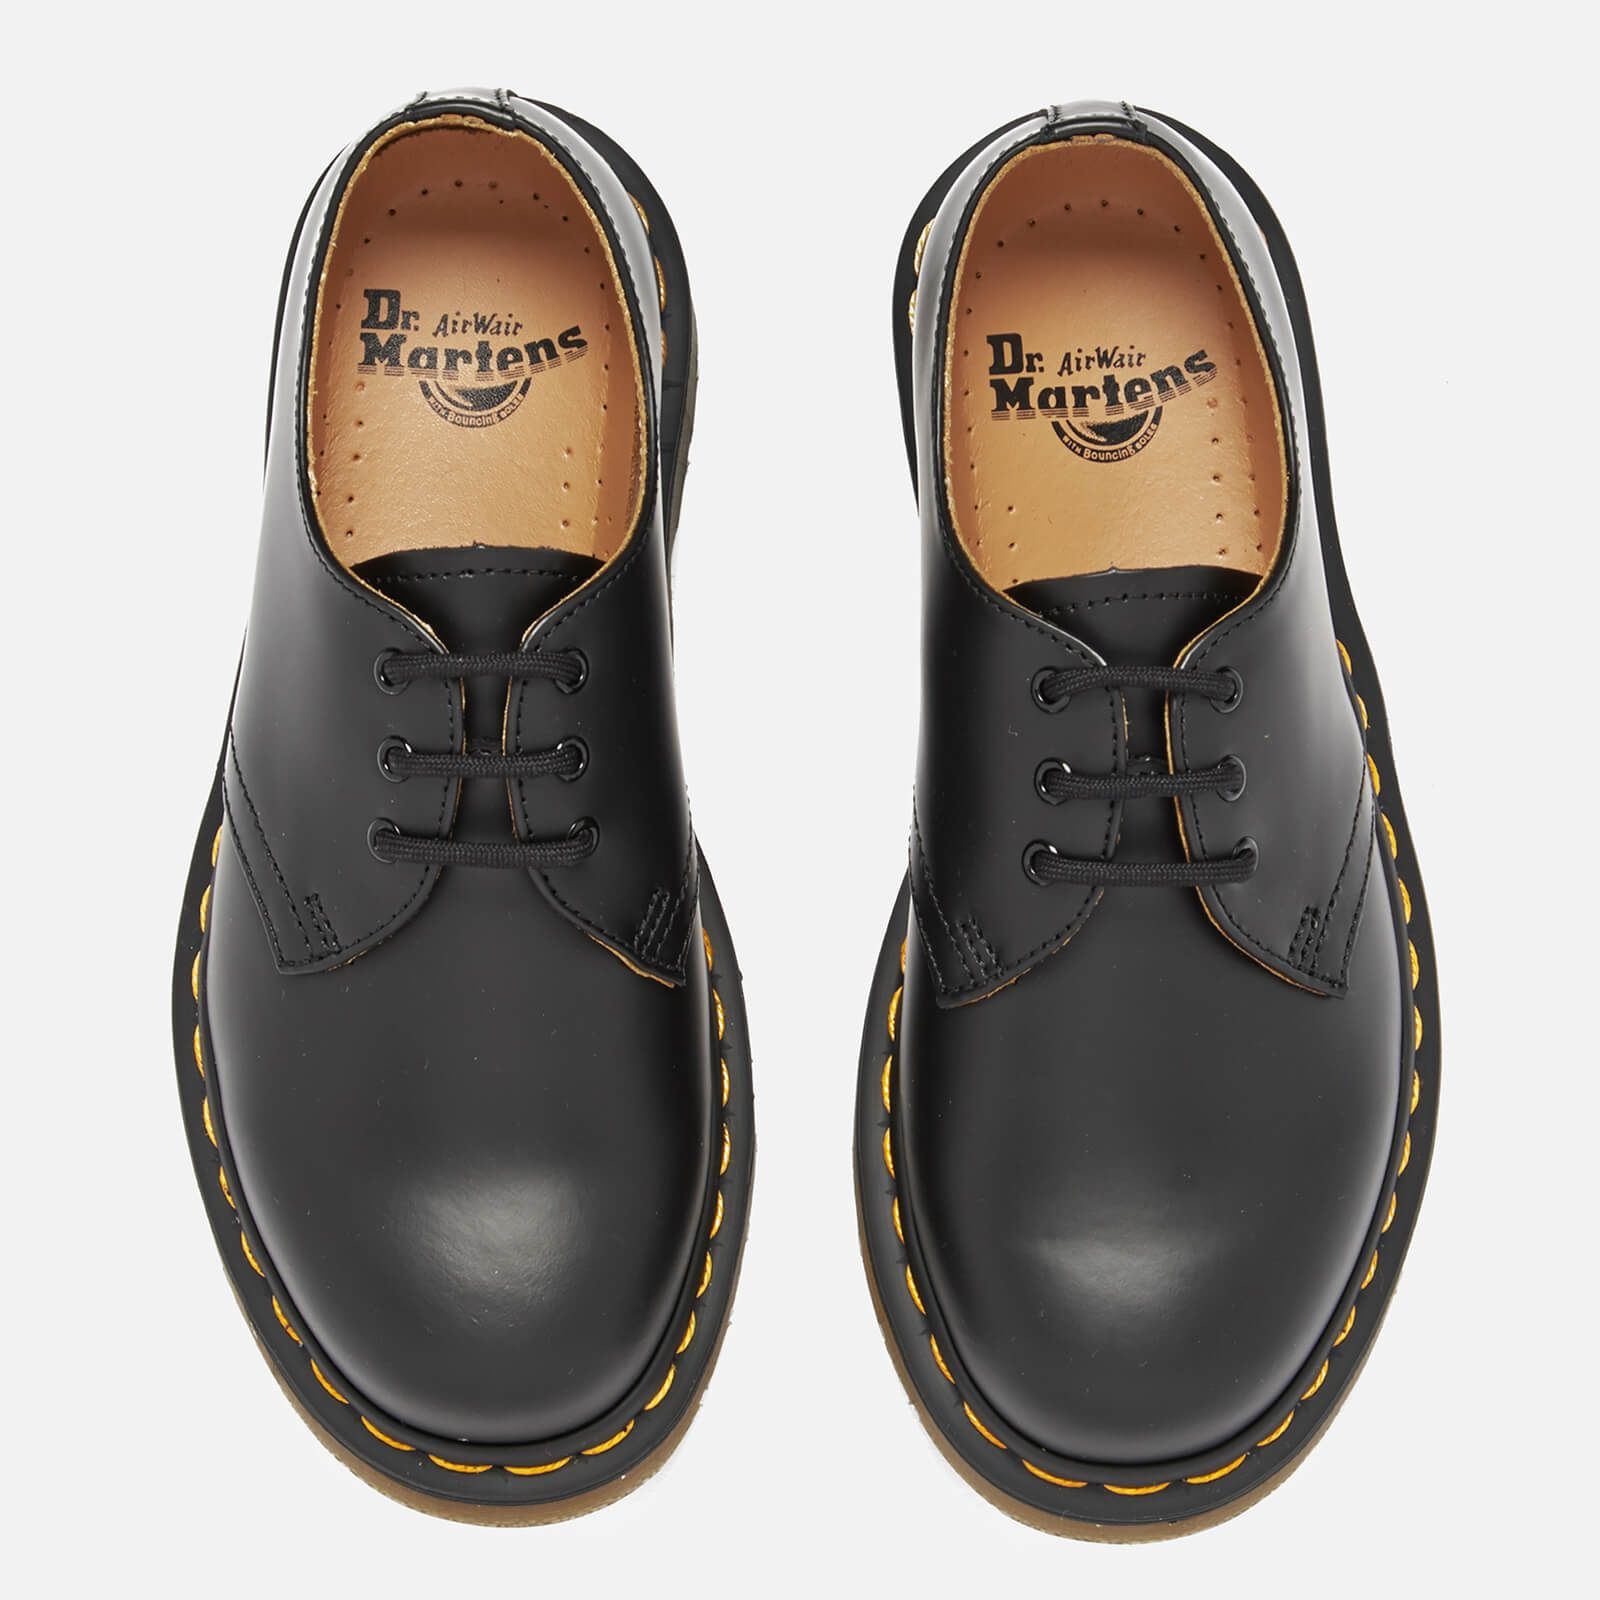 Dr Martens 1461 Smooth Leather 3 Eye Shoes Black In 2020 Black Lace Up Shoes Black Mid Heel Shoes Black Oxford Shoes